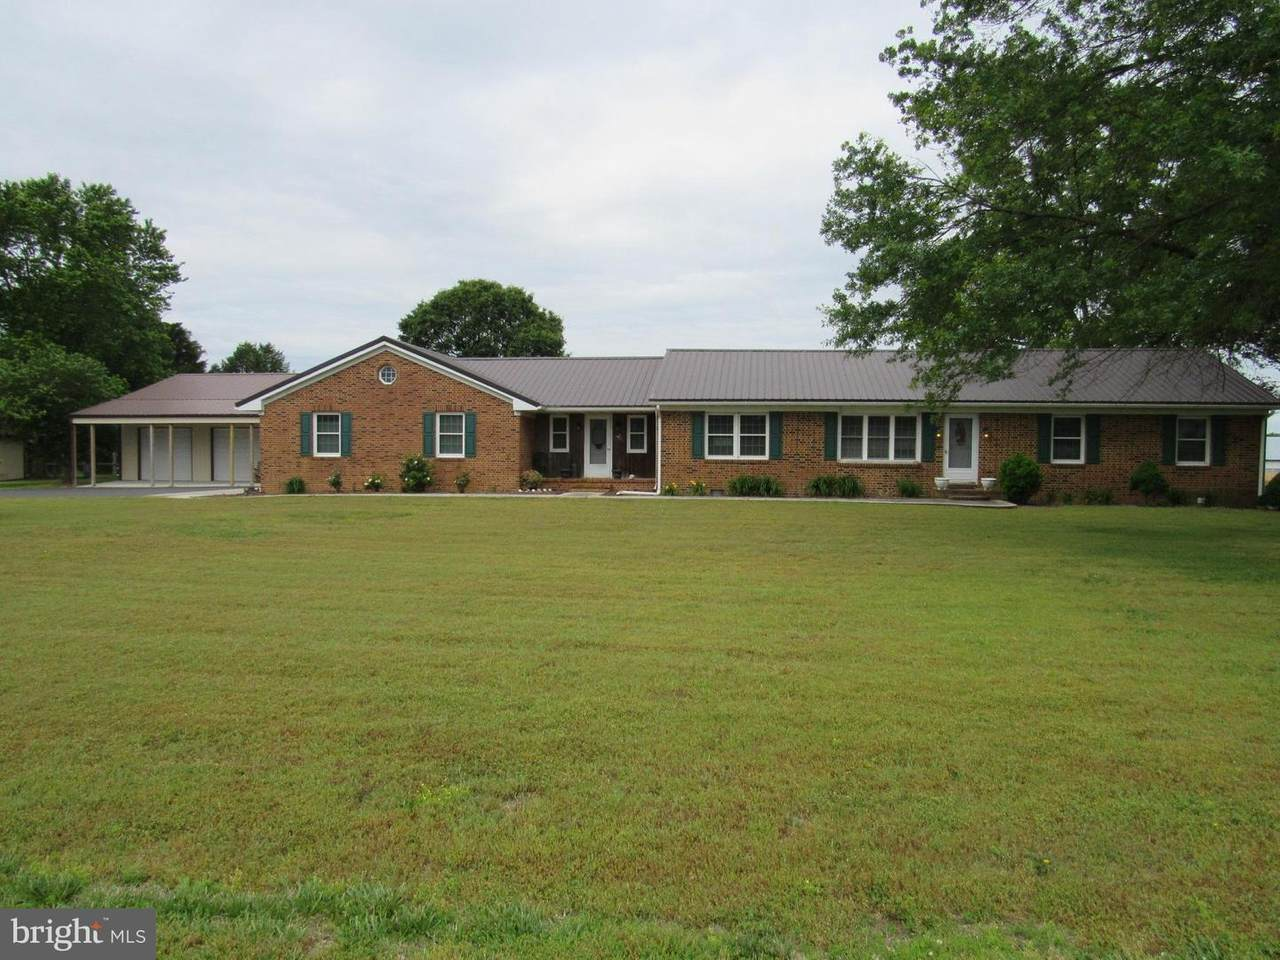 30444 Fire Tower Road - Photo 1